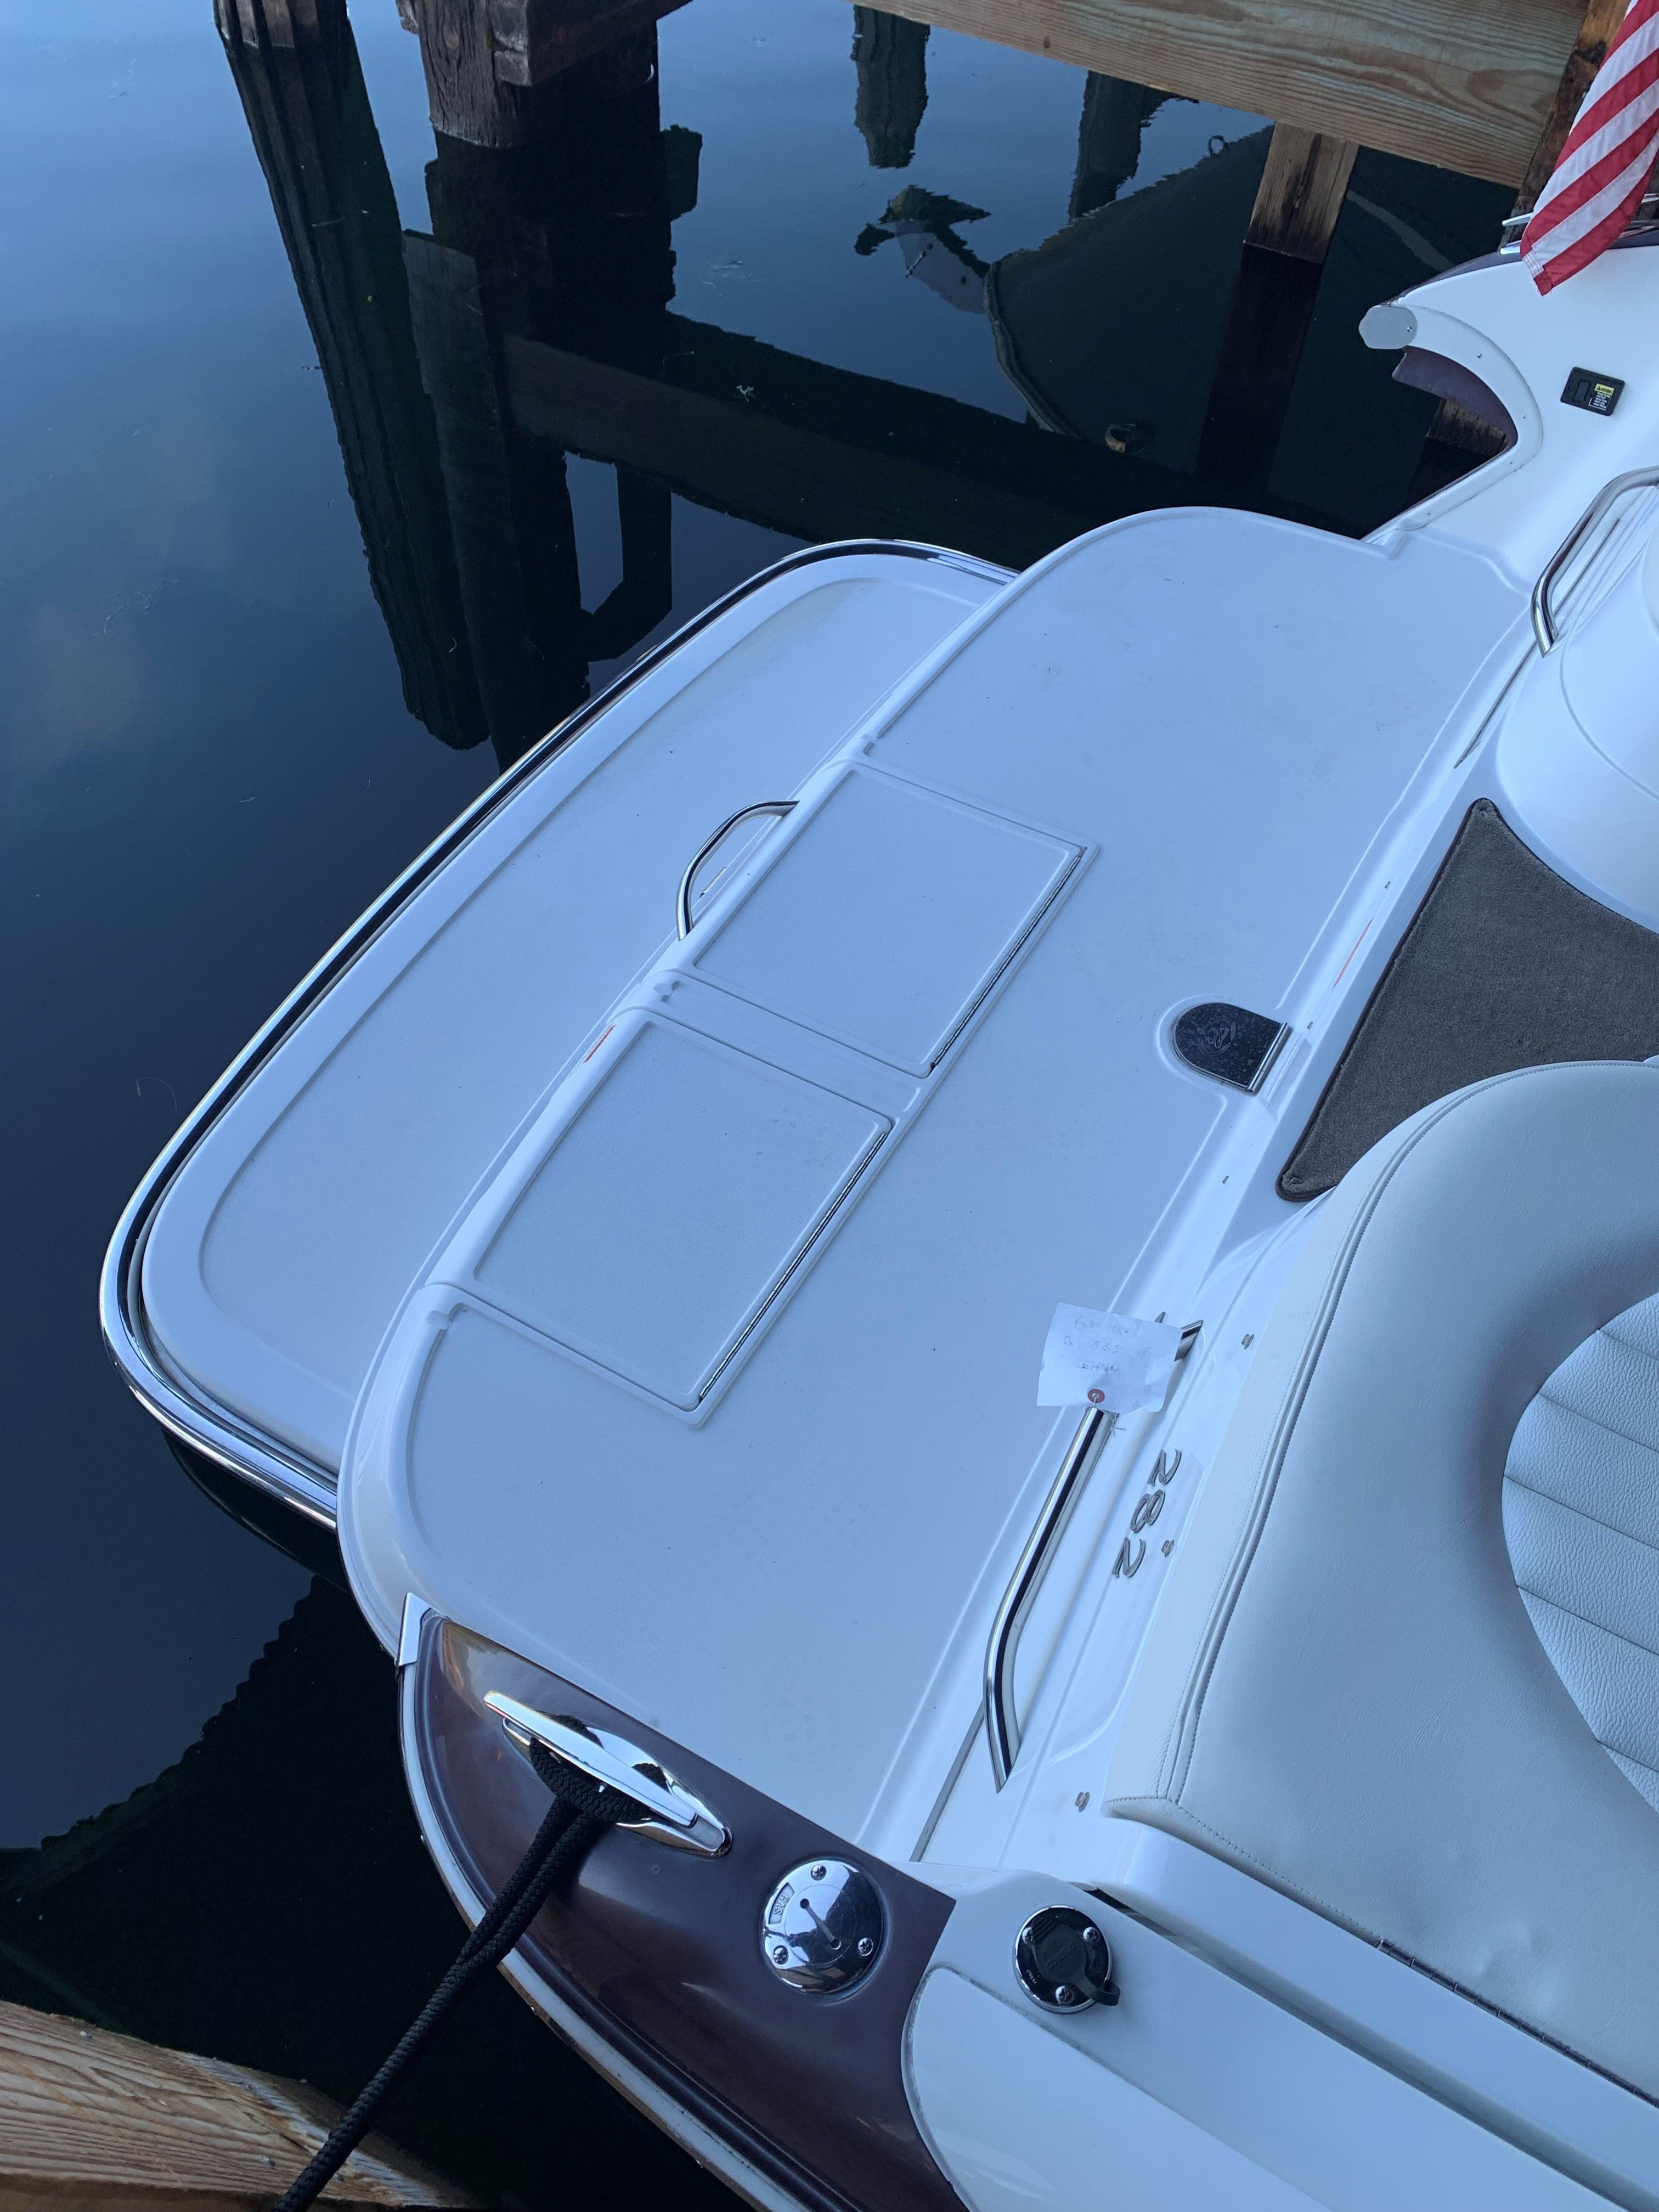 2007 Cobalt boat for sale, model of the boat is 282 & Image # 6 of 10